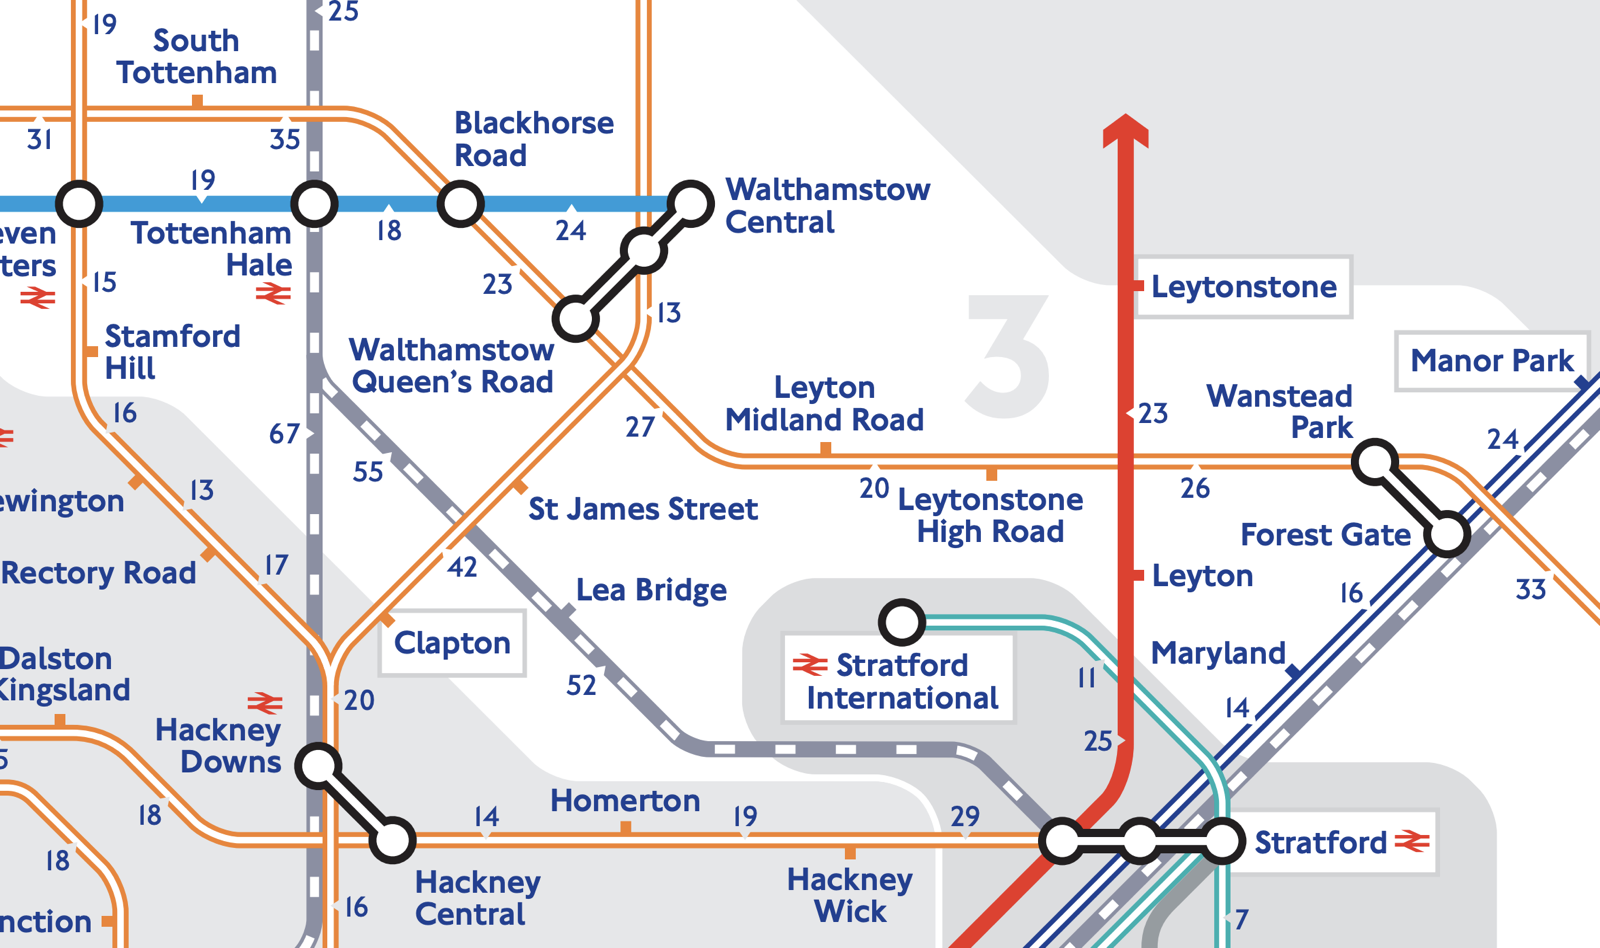 Walking Tube Map - Extended